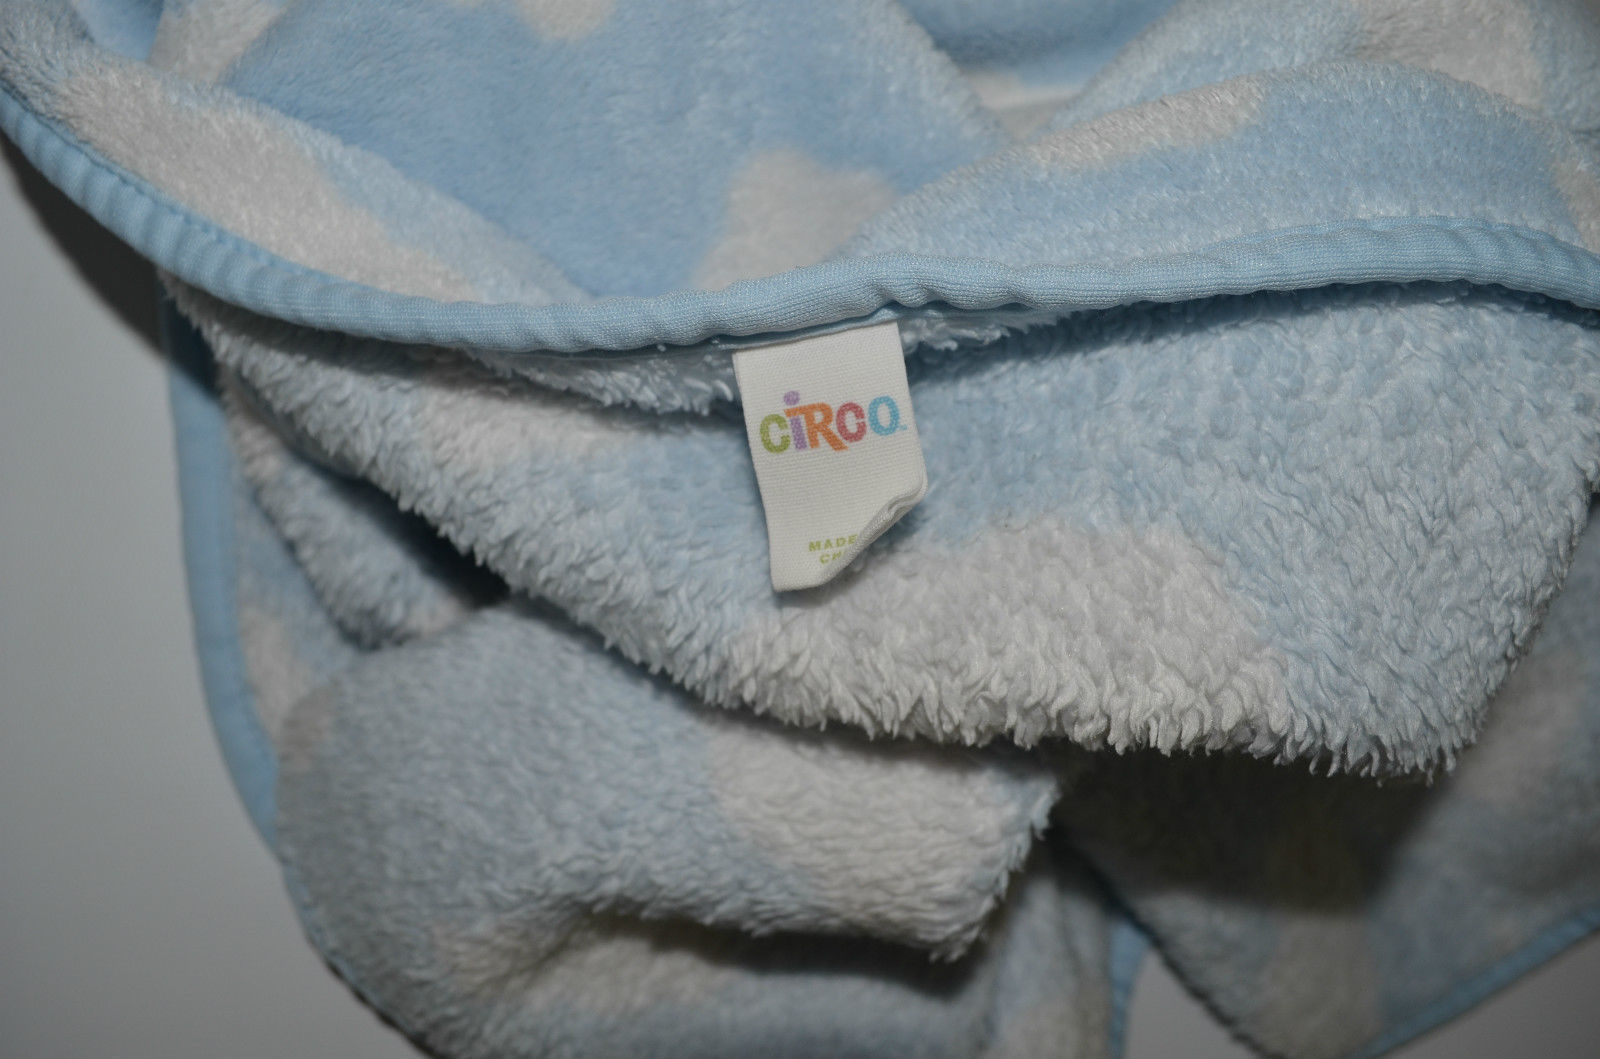 Baby Blanket Circo Target Blue Clouds White Soft Polyester